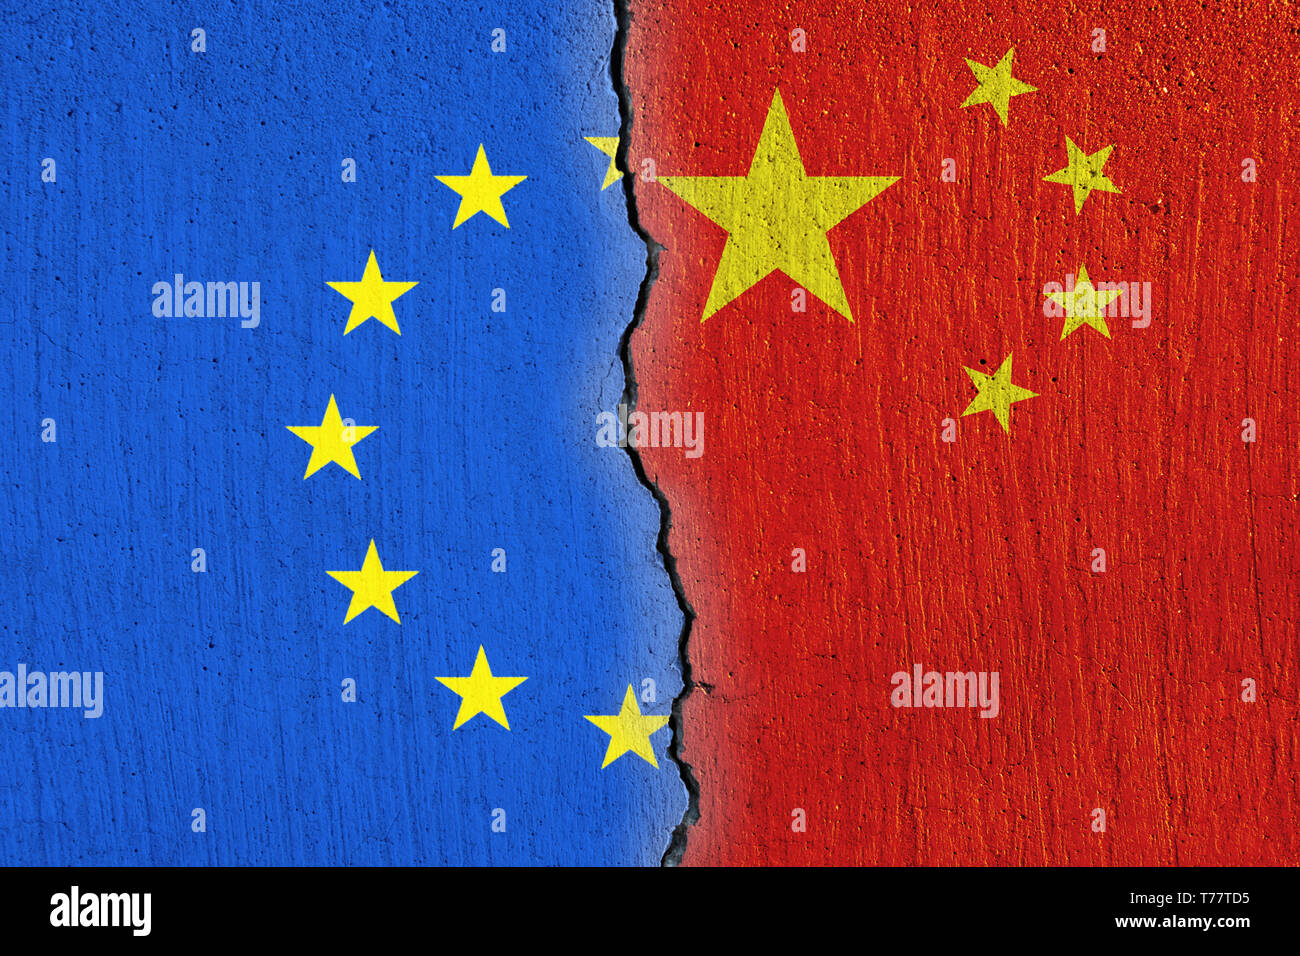 European Union flag  and Chinese flag painted on cracked wall , EU and China relations Stock Photo